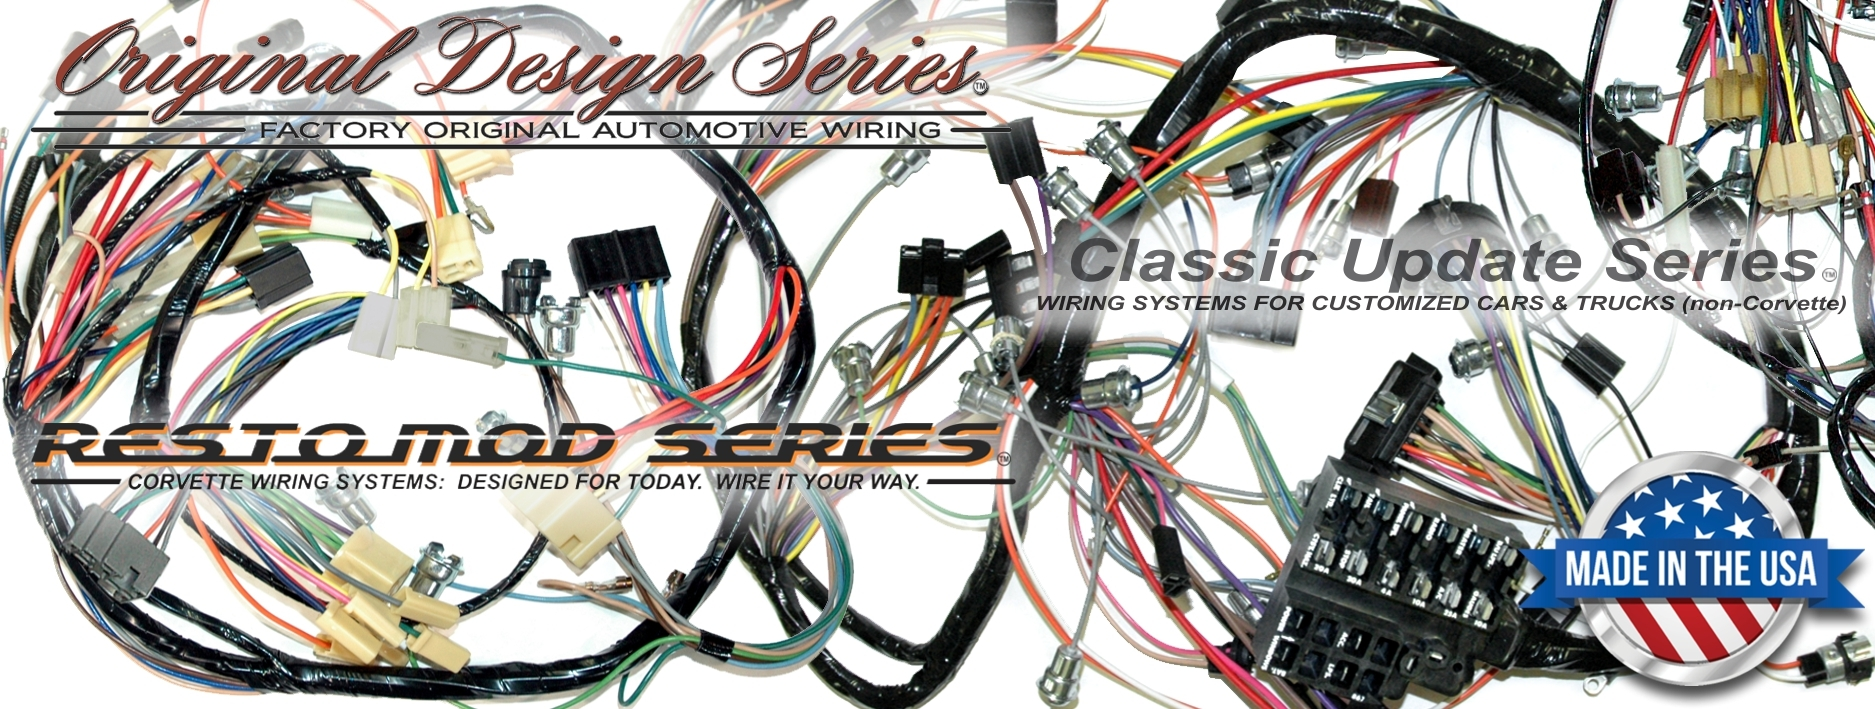 new header wiring_harnesses exact oem reproduction wiring harnesses and restomod wiring pictures of wiring harness 2008 impala ss at n-0.co